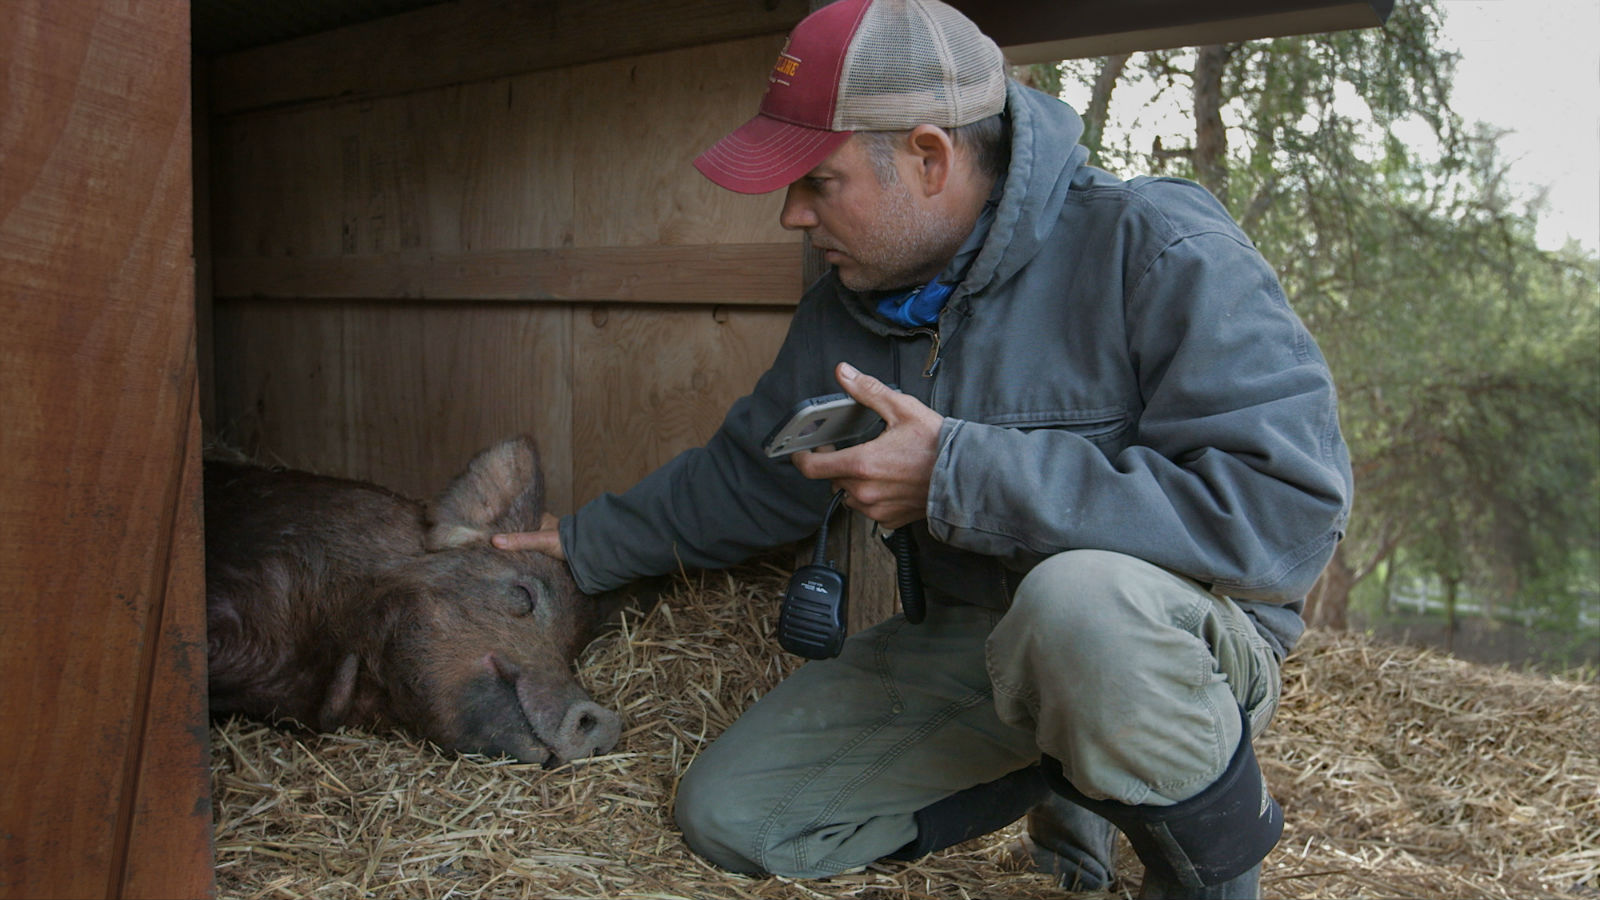 Filmmaker John Chester with Emma the pig.